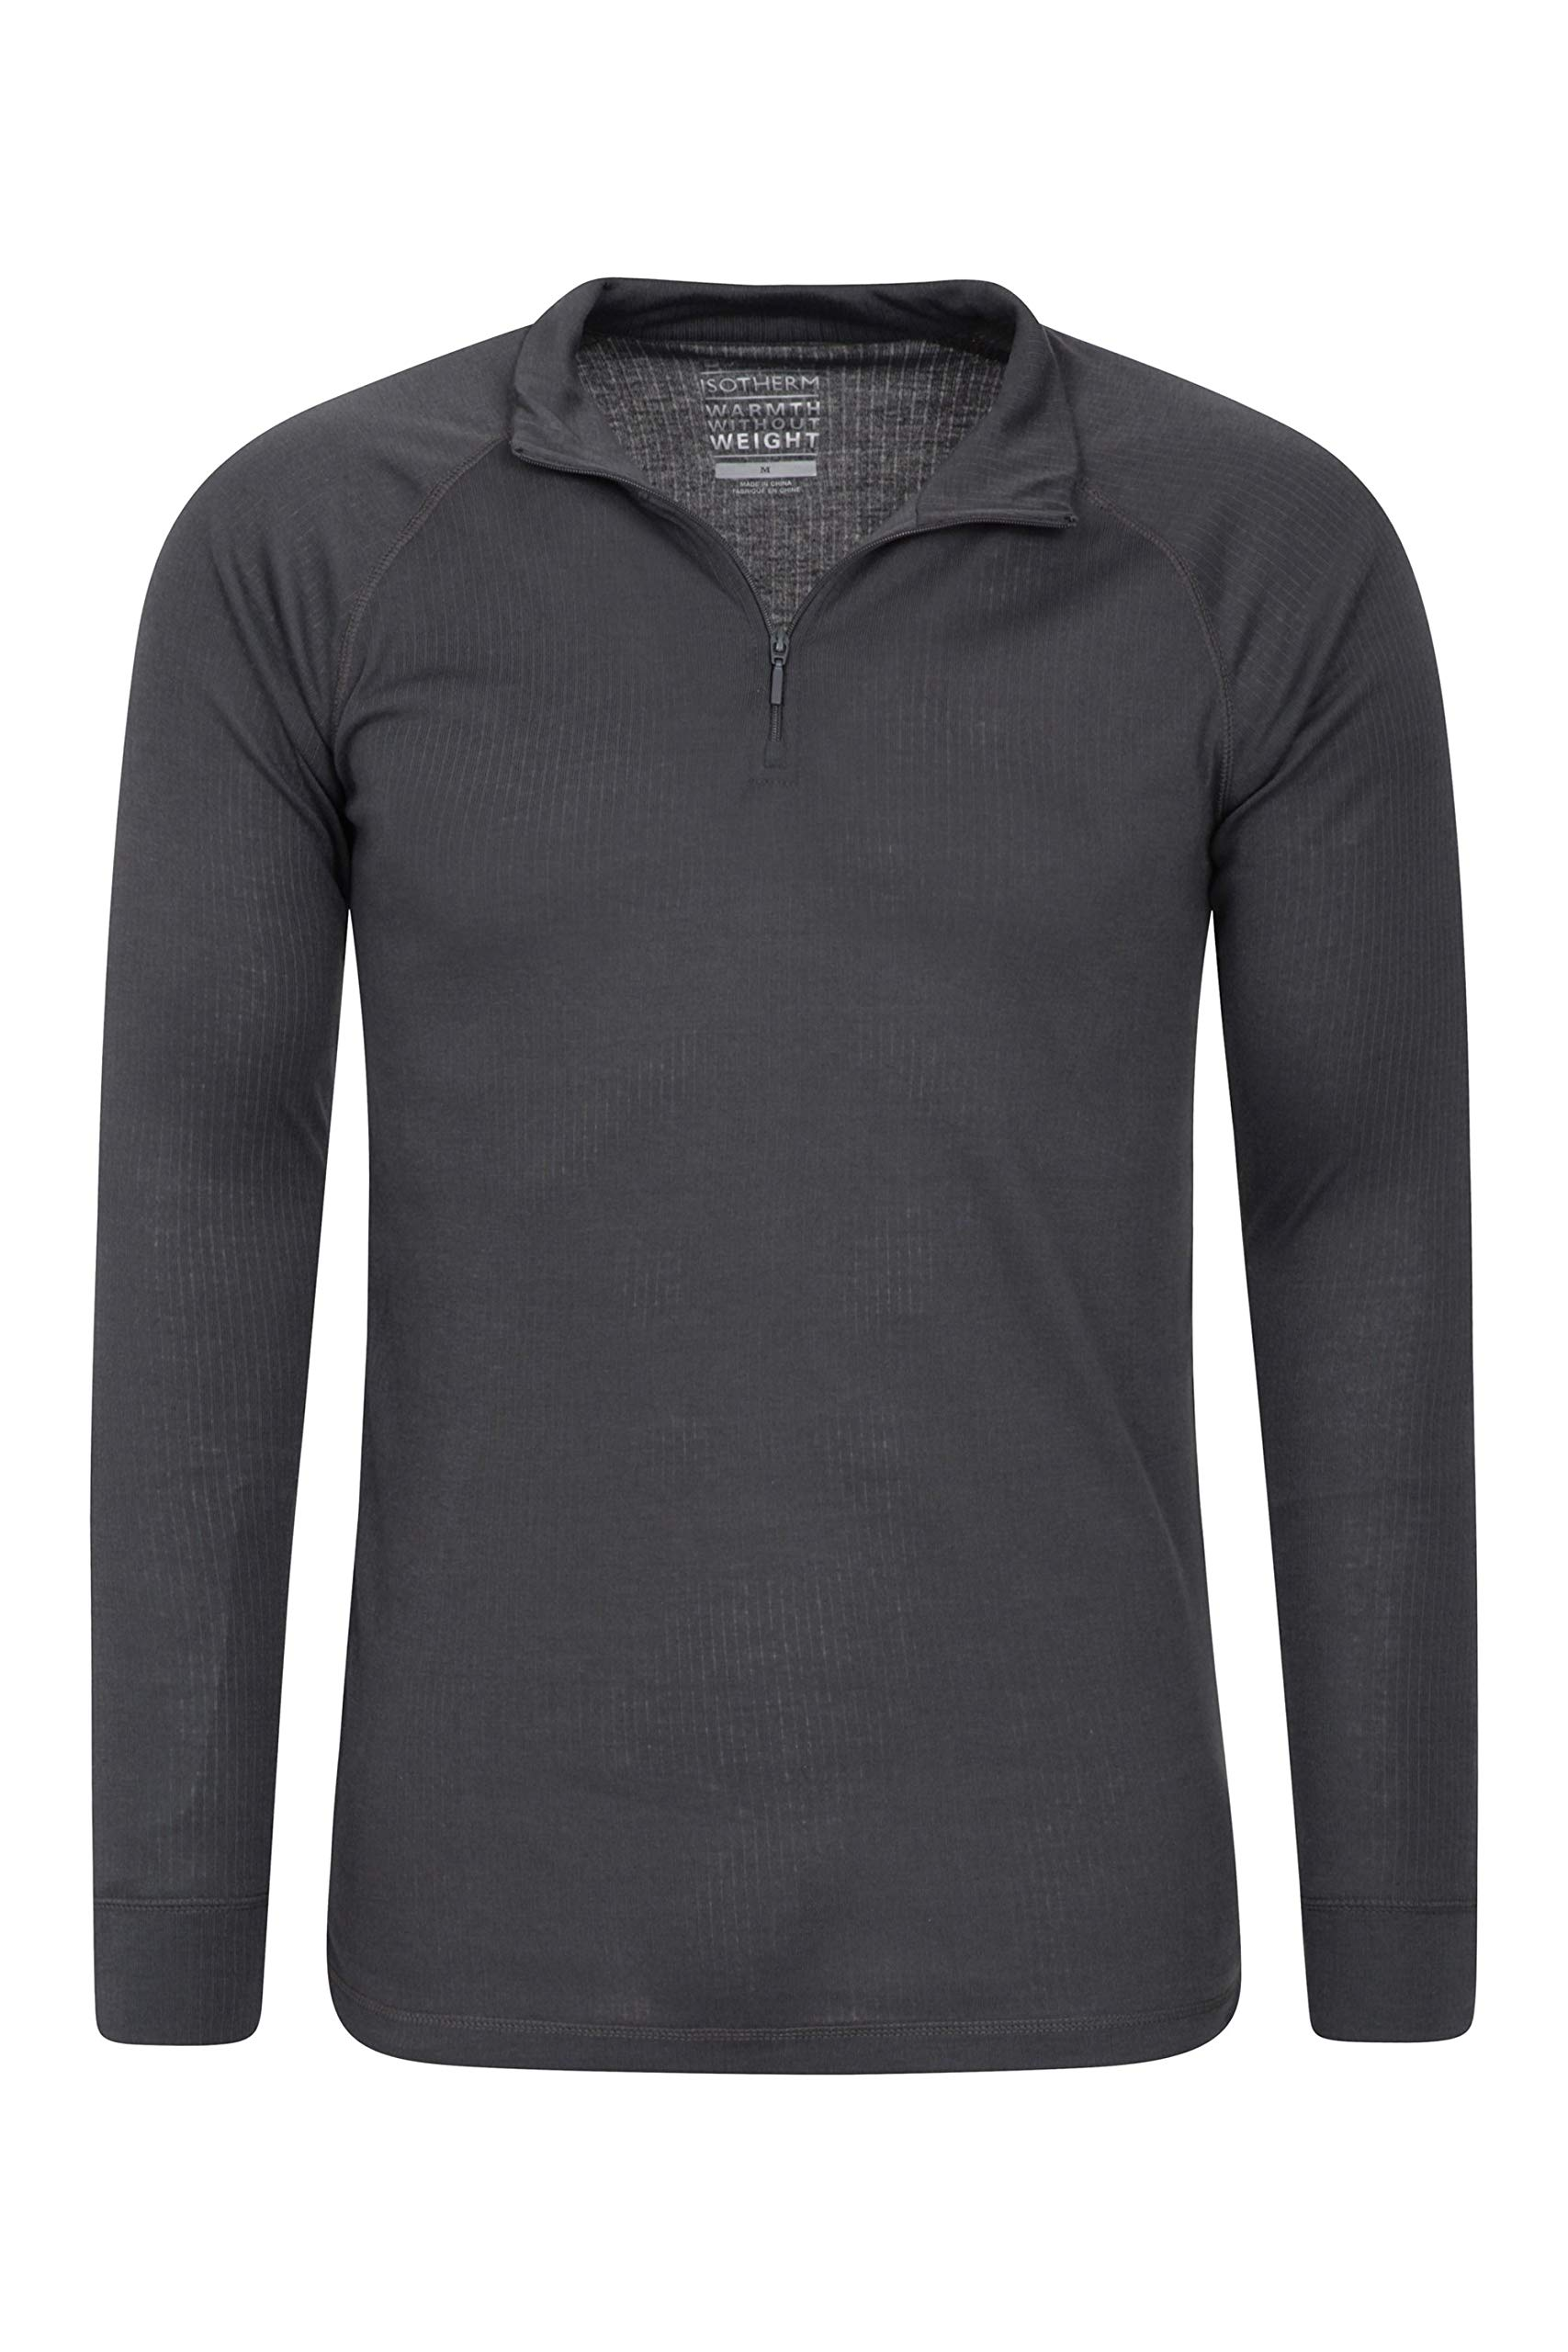 Mountain Warehouse Talus Mens Thermal Baselayer Top - Long Sleeve Sweater, Zip Neck, Quick Drying Pullover, Breathable, Lightweight - Great for Winter, Travelling 4